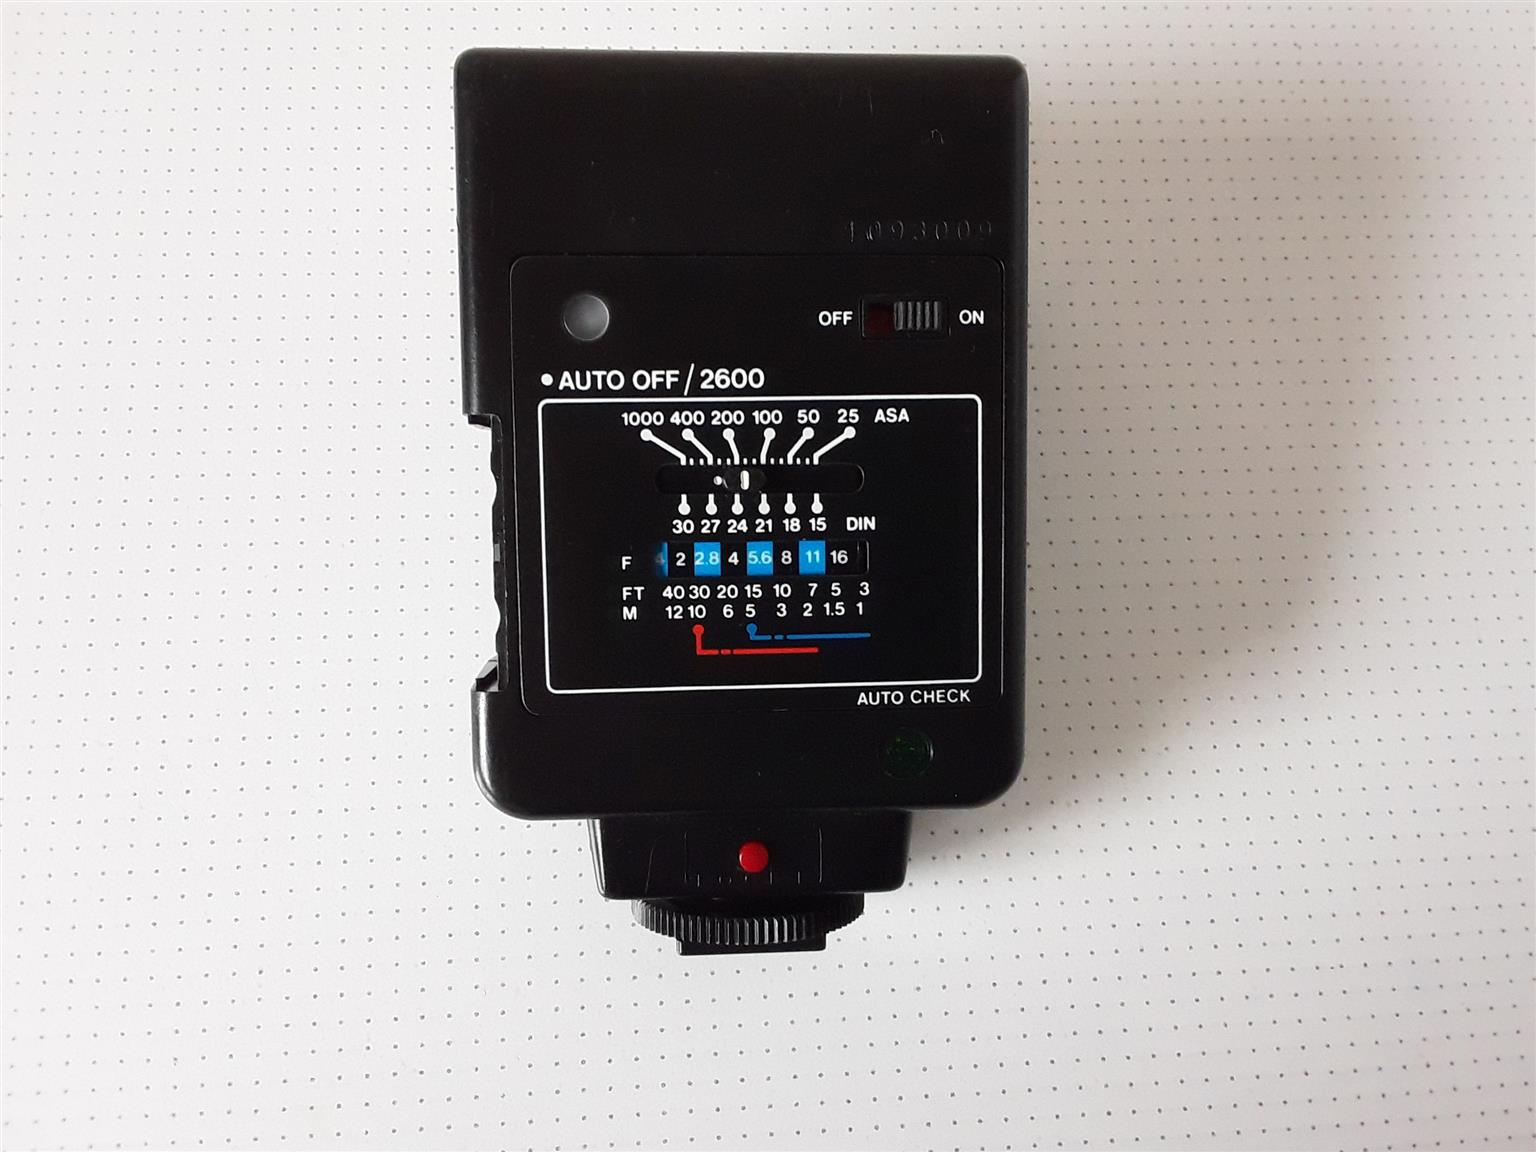 Vivitar 2600 automatic flash features a 3- to 30-foot automatic exposure range.